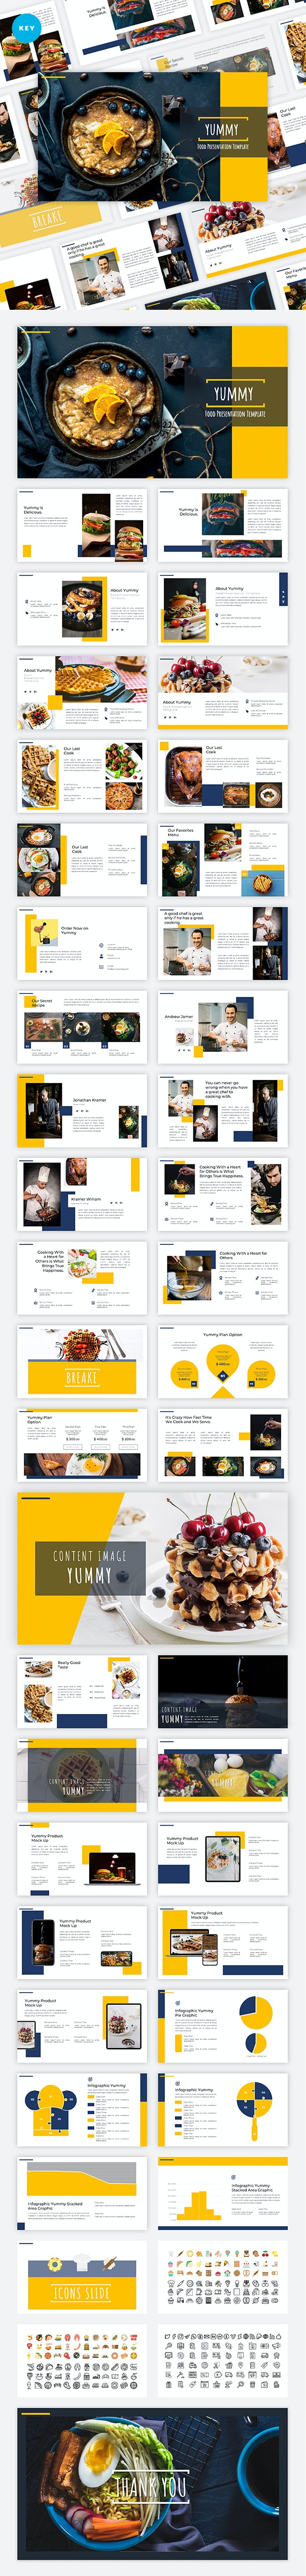 Yummy - Food Keynote Template - Creative Keynote Templates